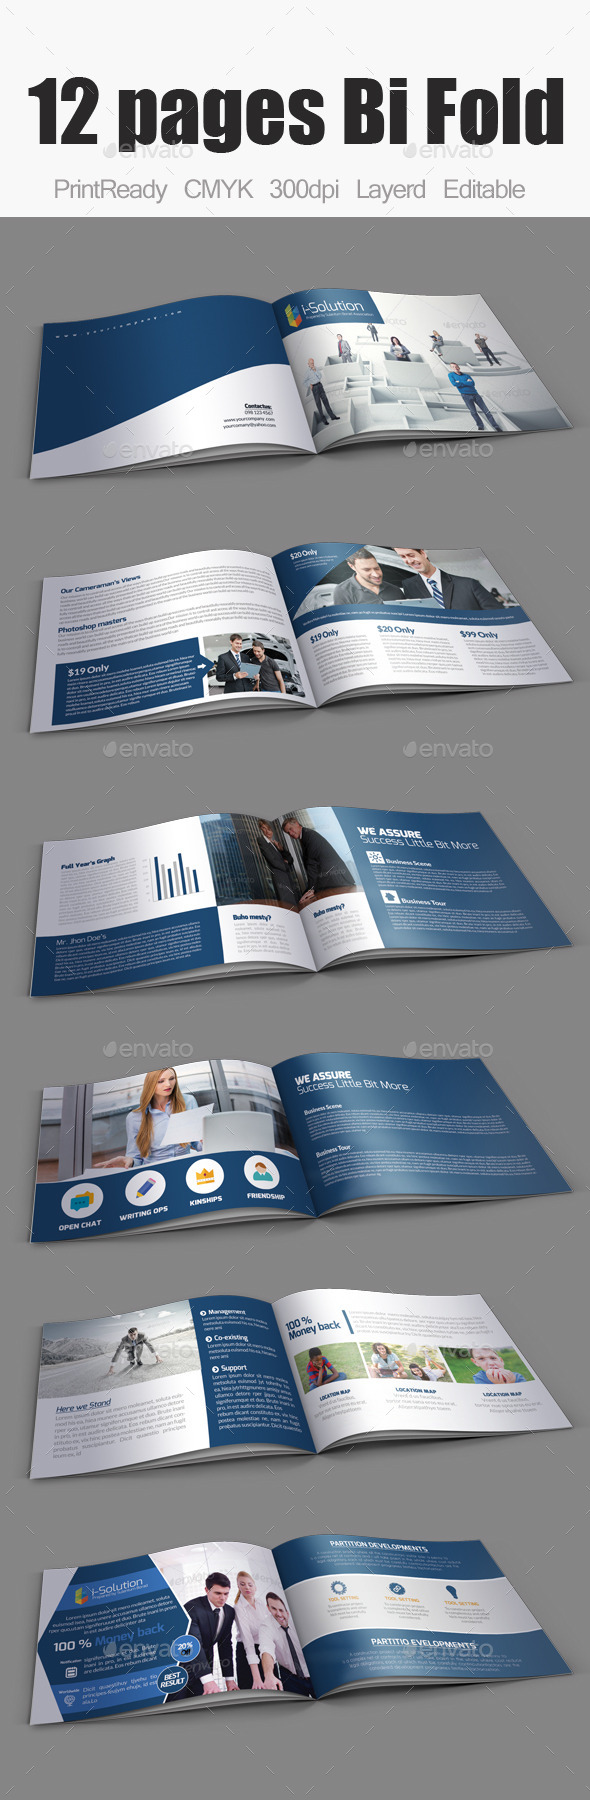 GraphicRiver Business Bifold Square Brochure Template 10985299